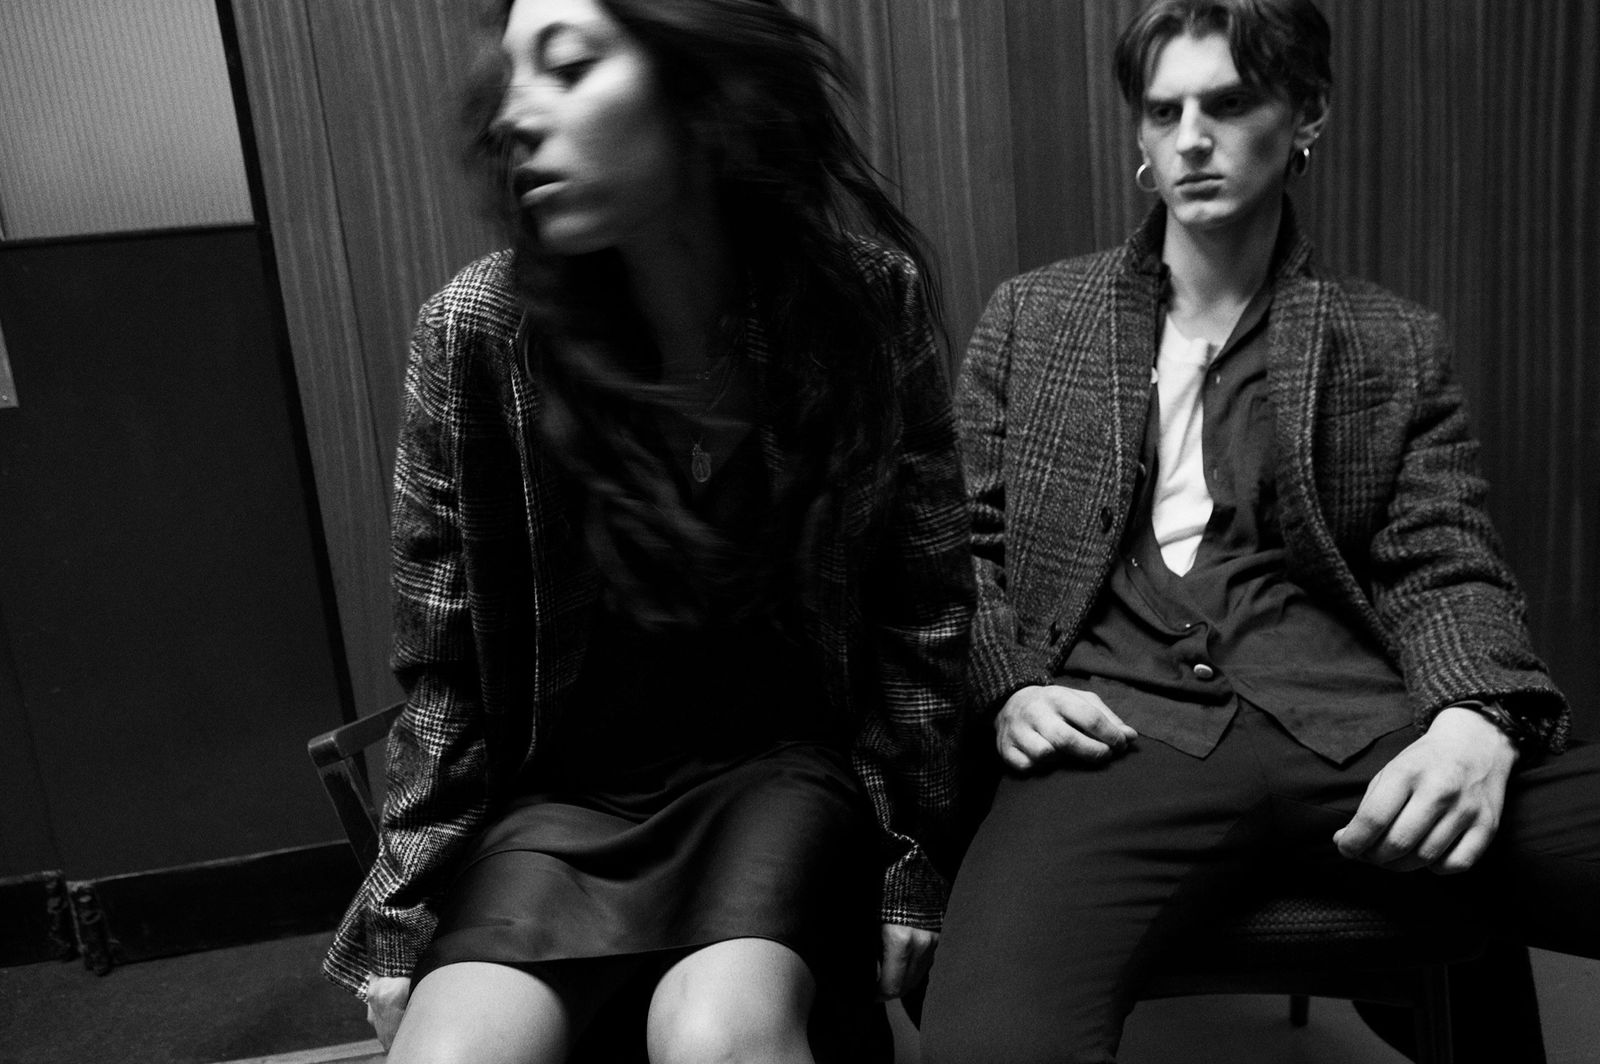 Black and white image of a woman and a man sitting in a corridor wearing items from our latest collection.